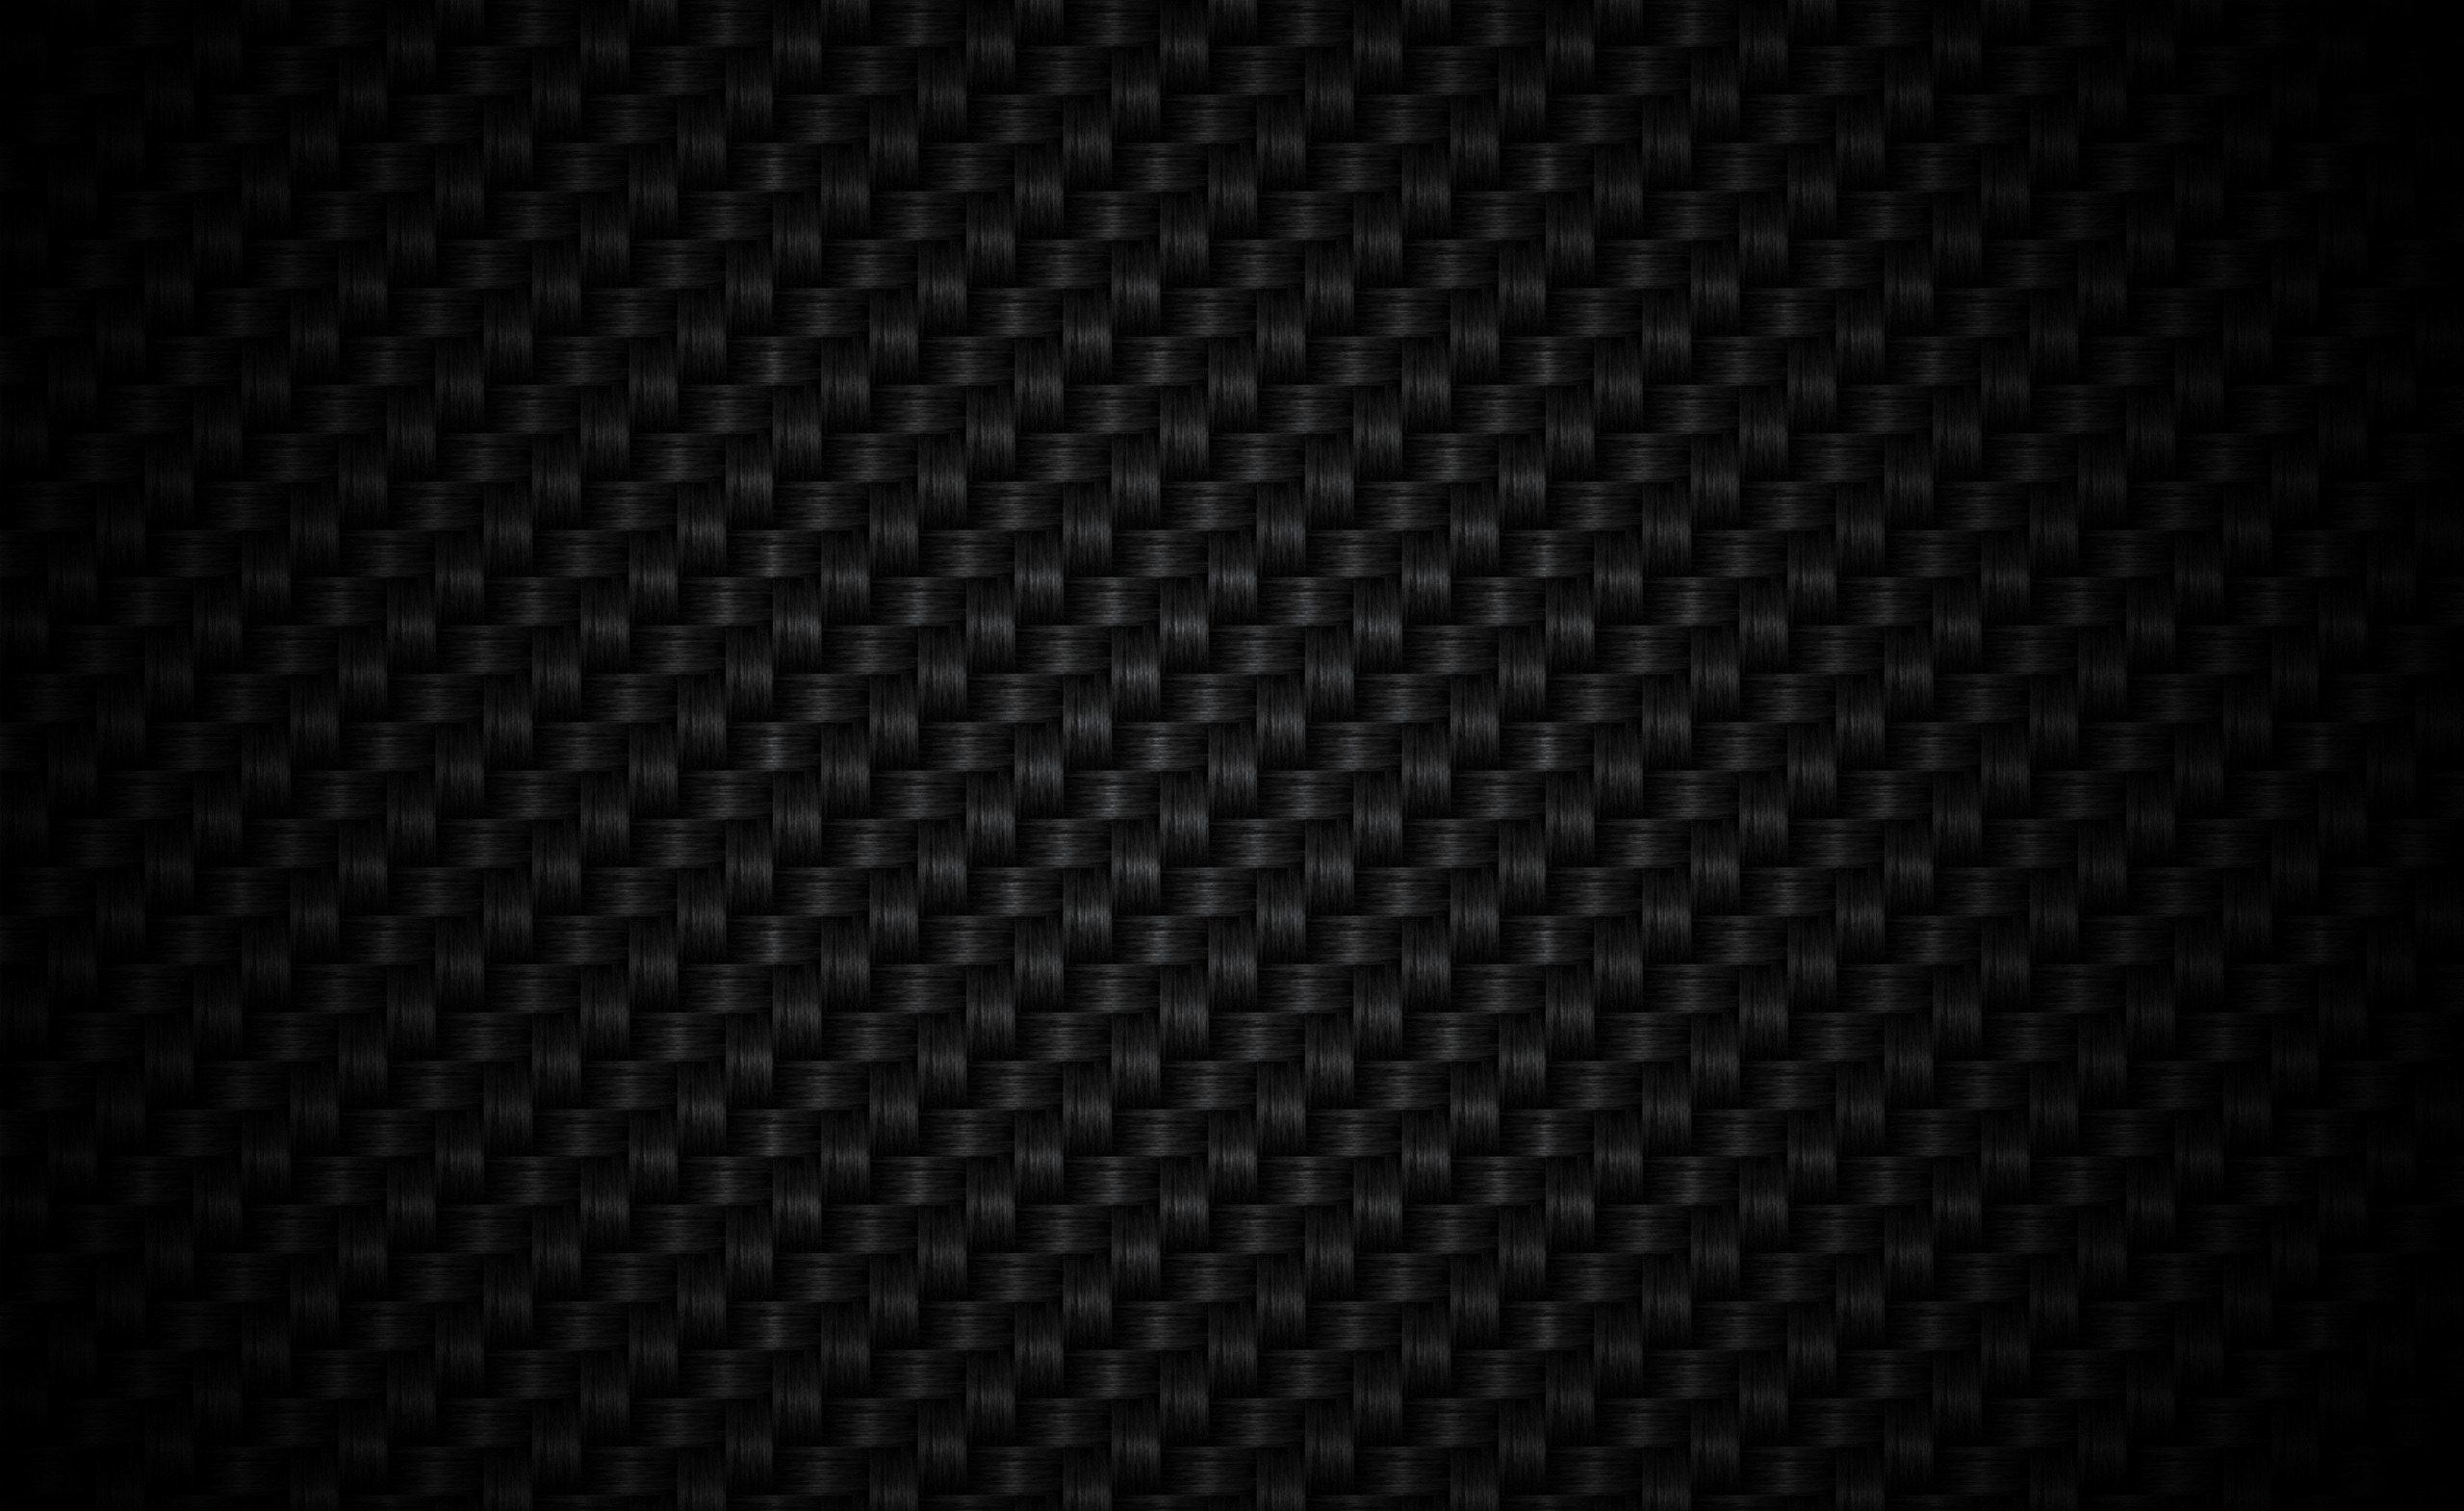 download black texture wallpaper 2560x1570 full hd